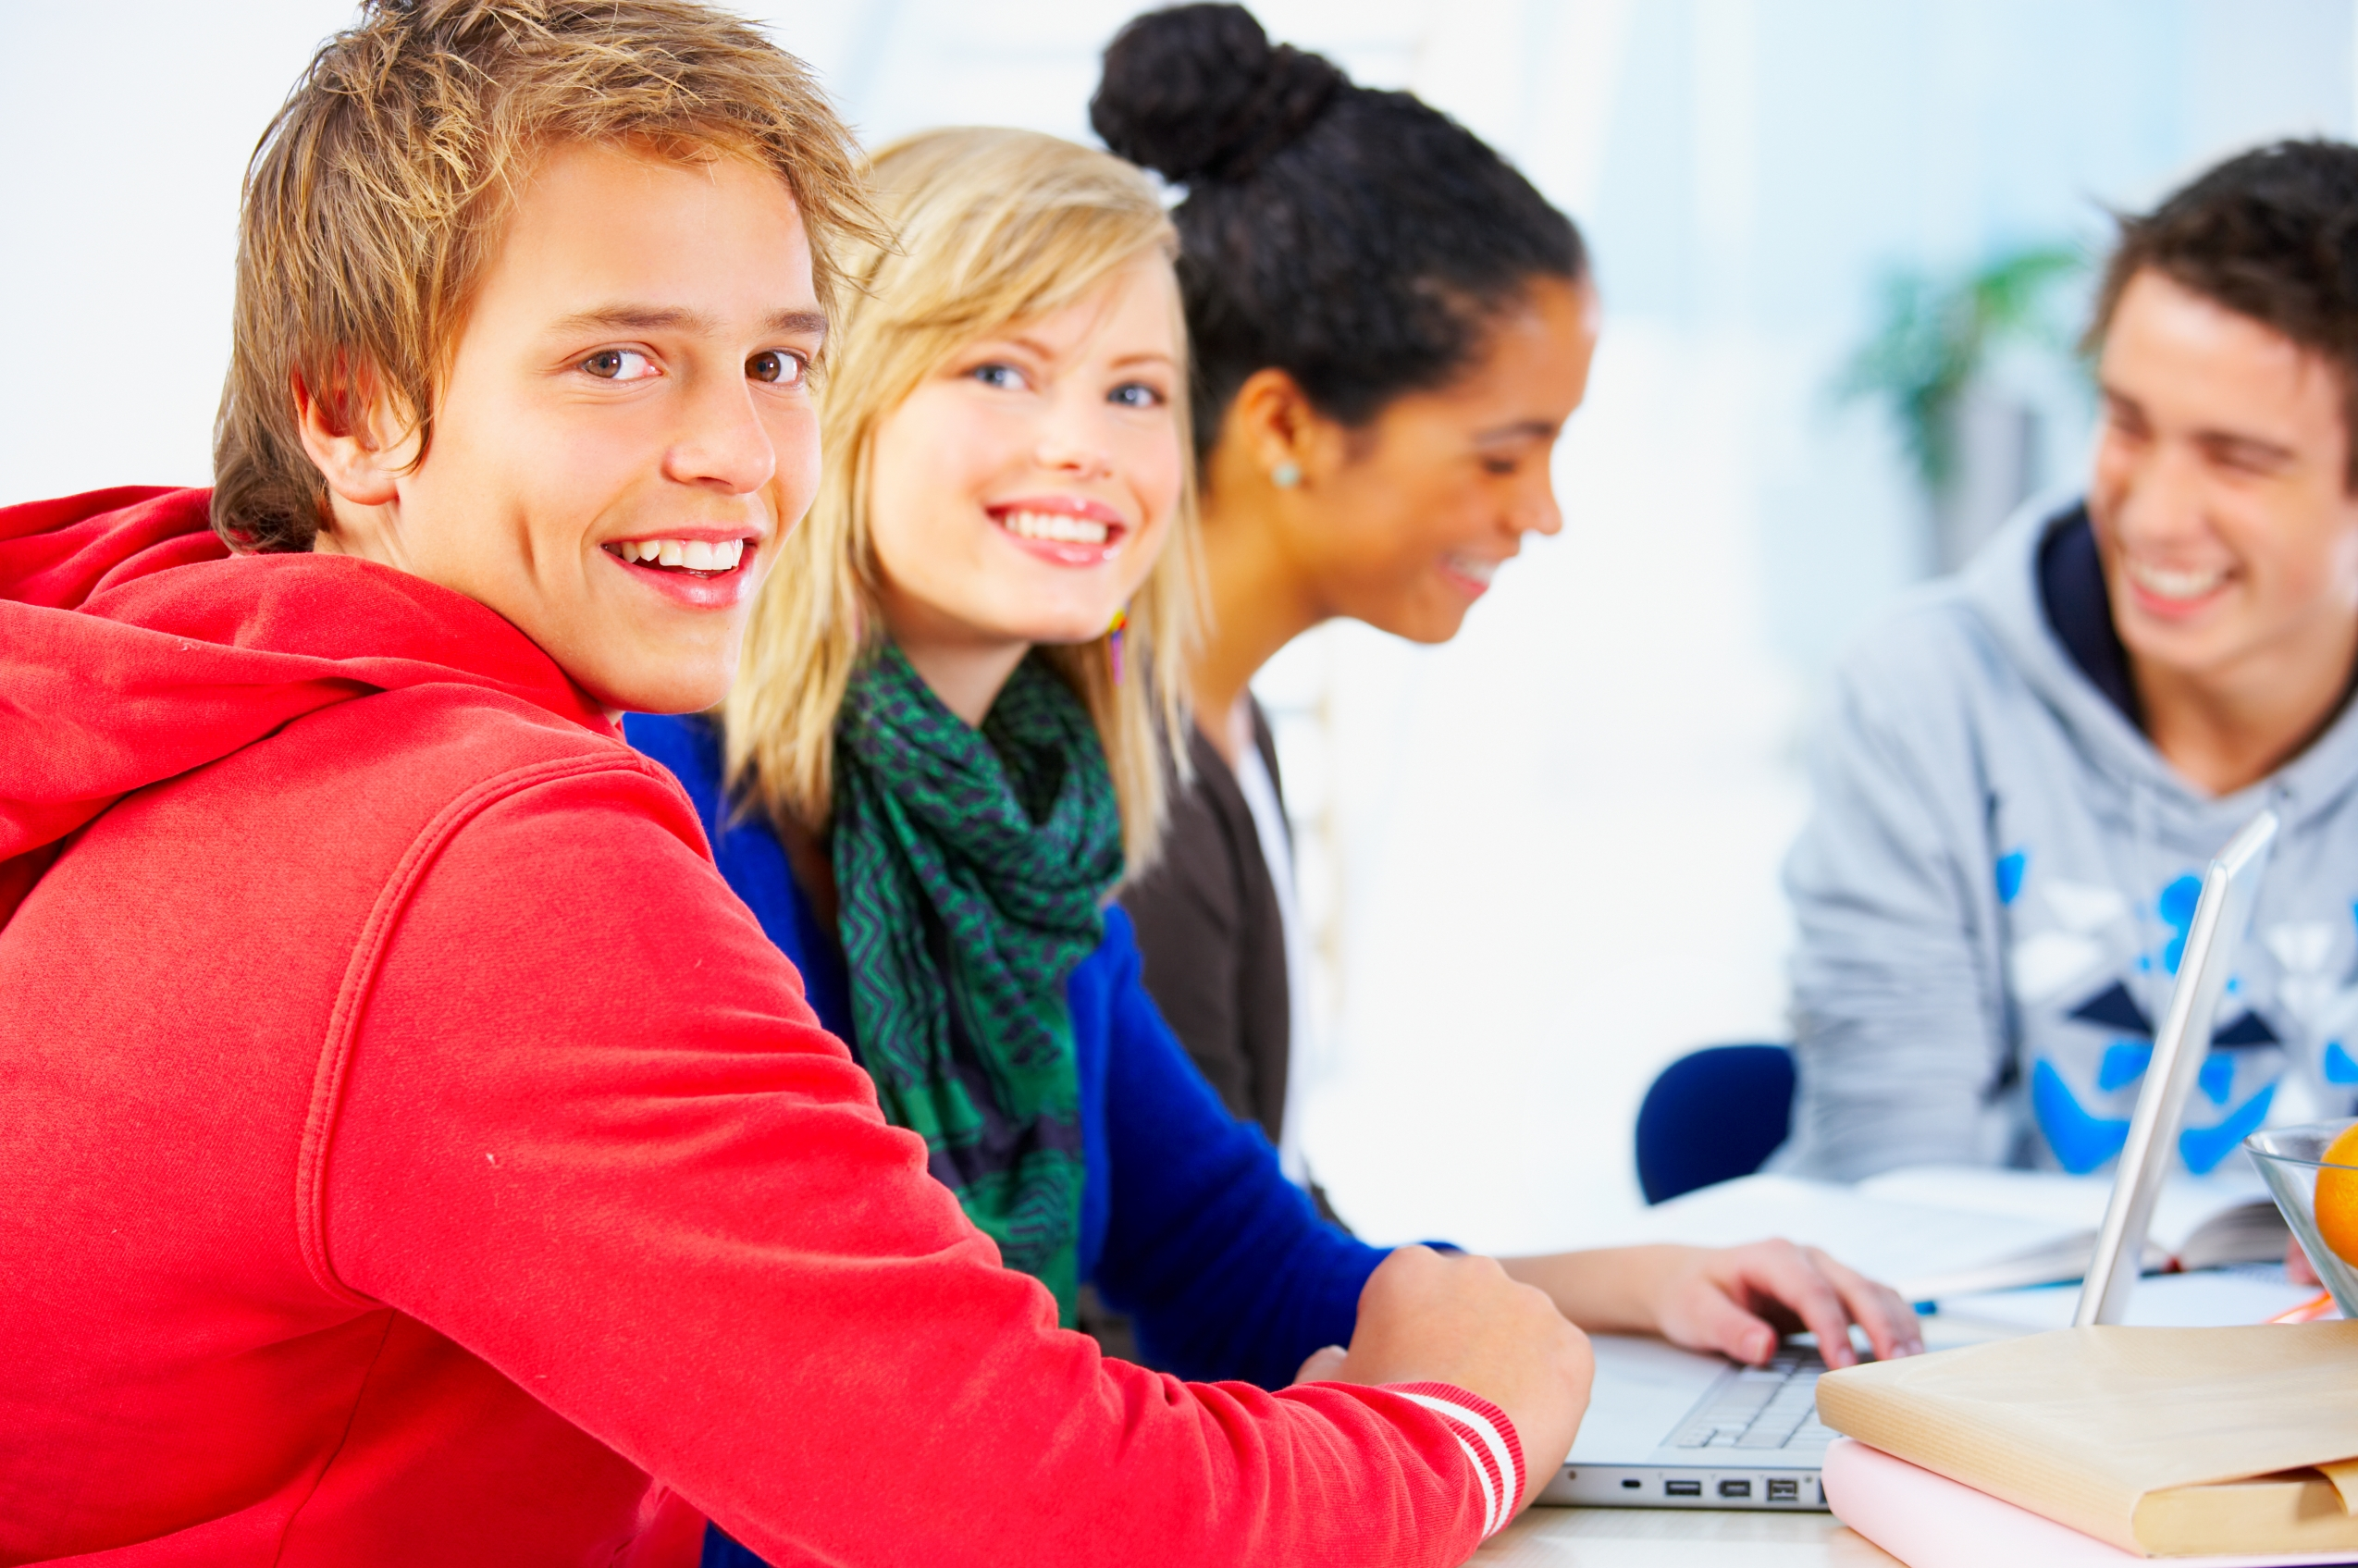 an analysis of college for young people Welcome to our essay examples section, here you will find a large collection of example essays demonstrating the quality of work produced by our academic writers.